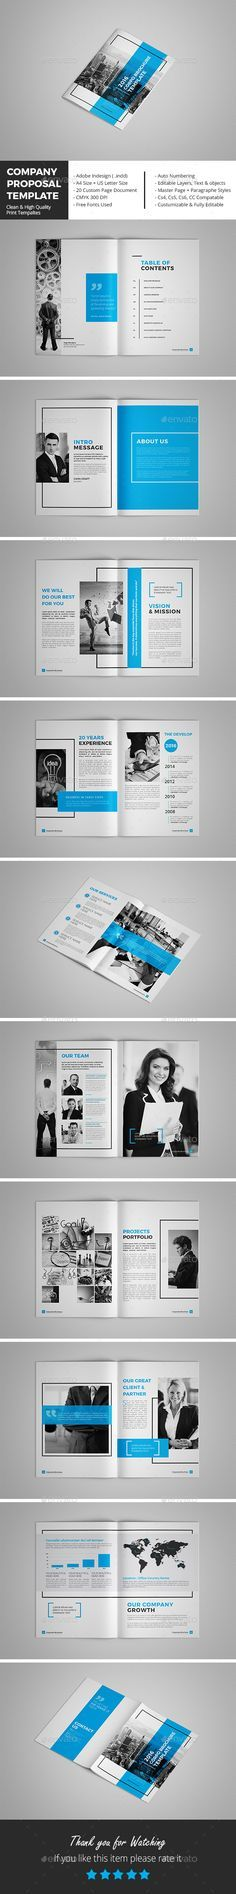 Company Proposal Template Proposal templates, Indesign templates - company proposal template